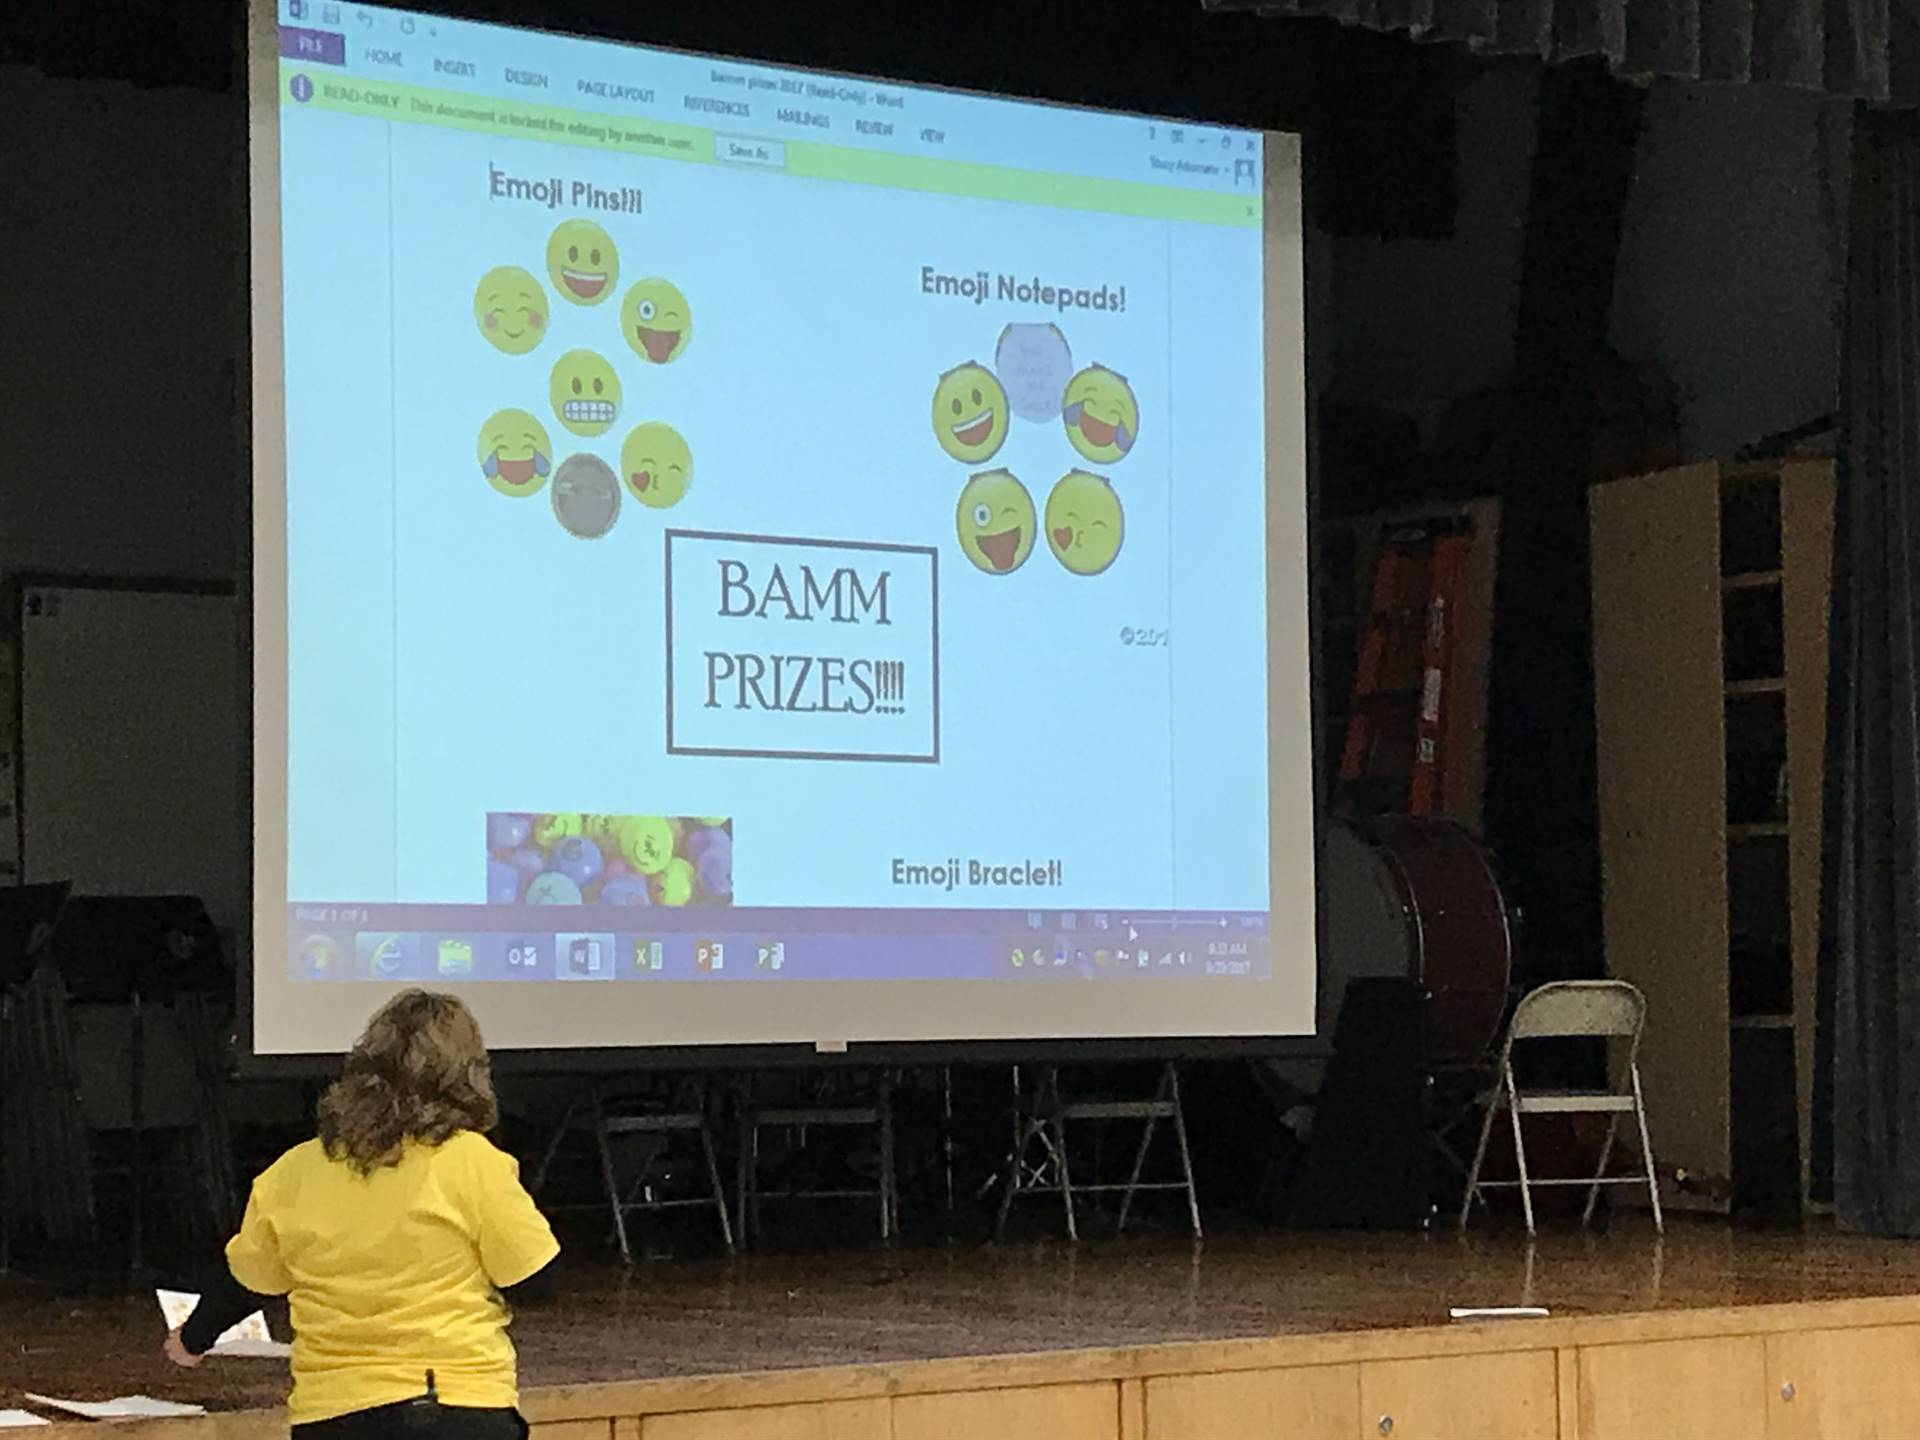 You can win Prizes for participating in BAMM (Be A Math Master)